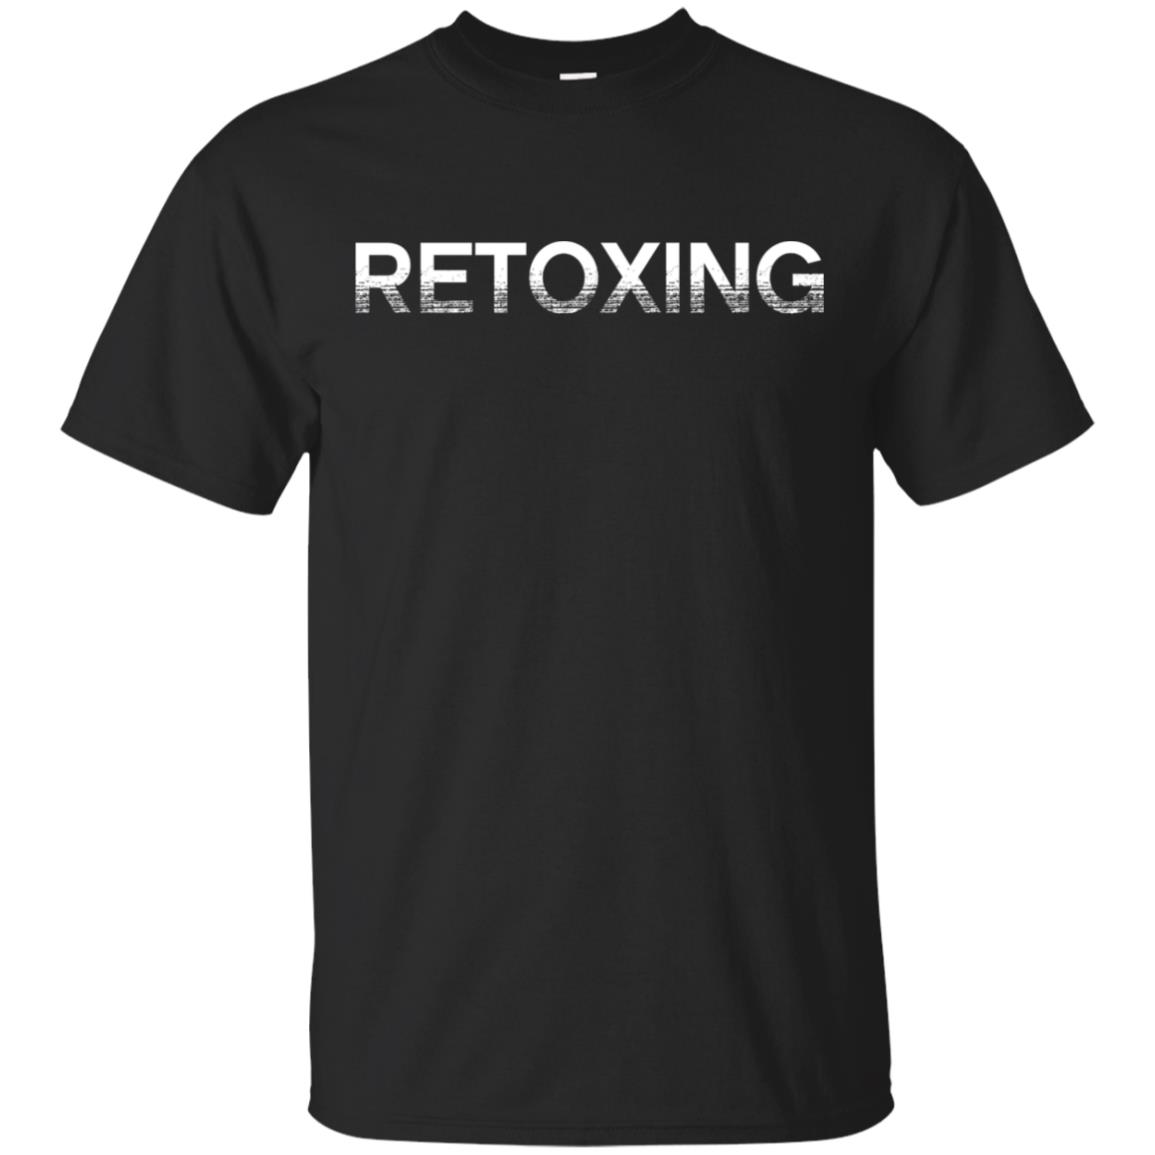 Retoxing Unisex Short Sleeve